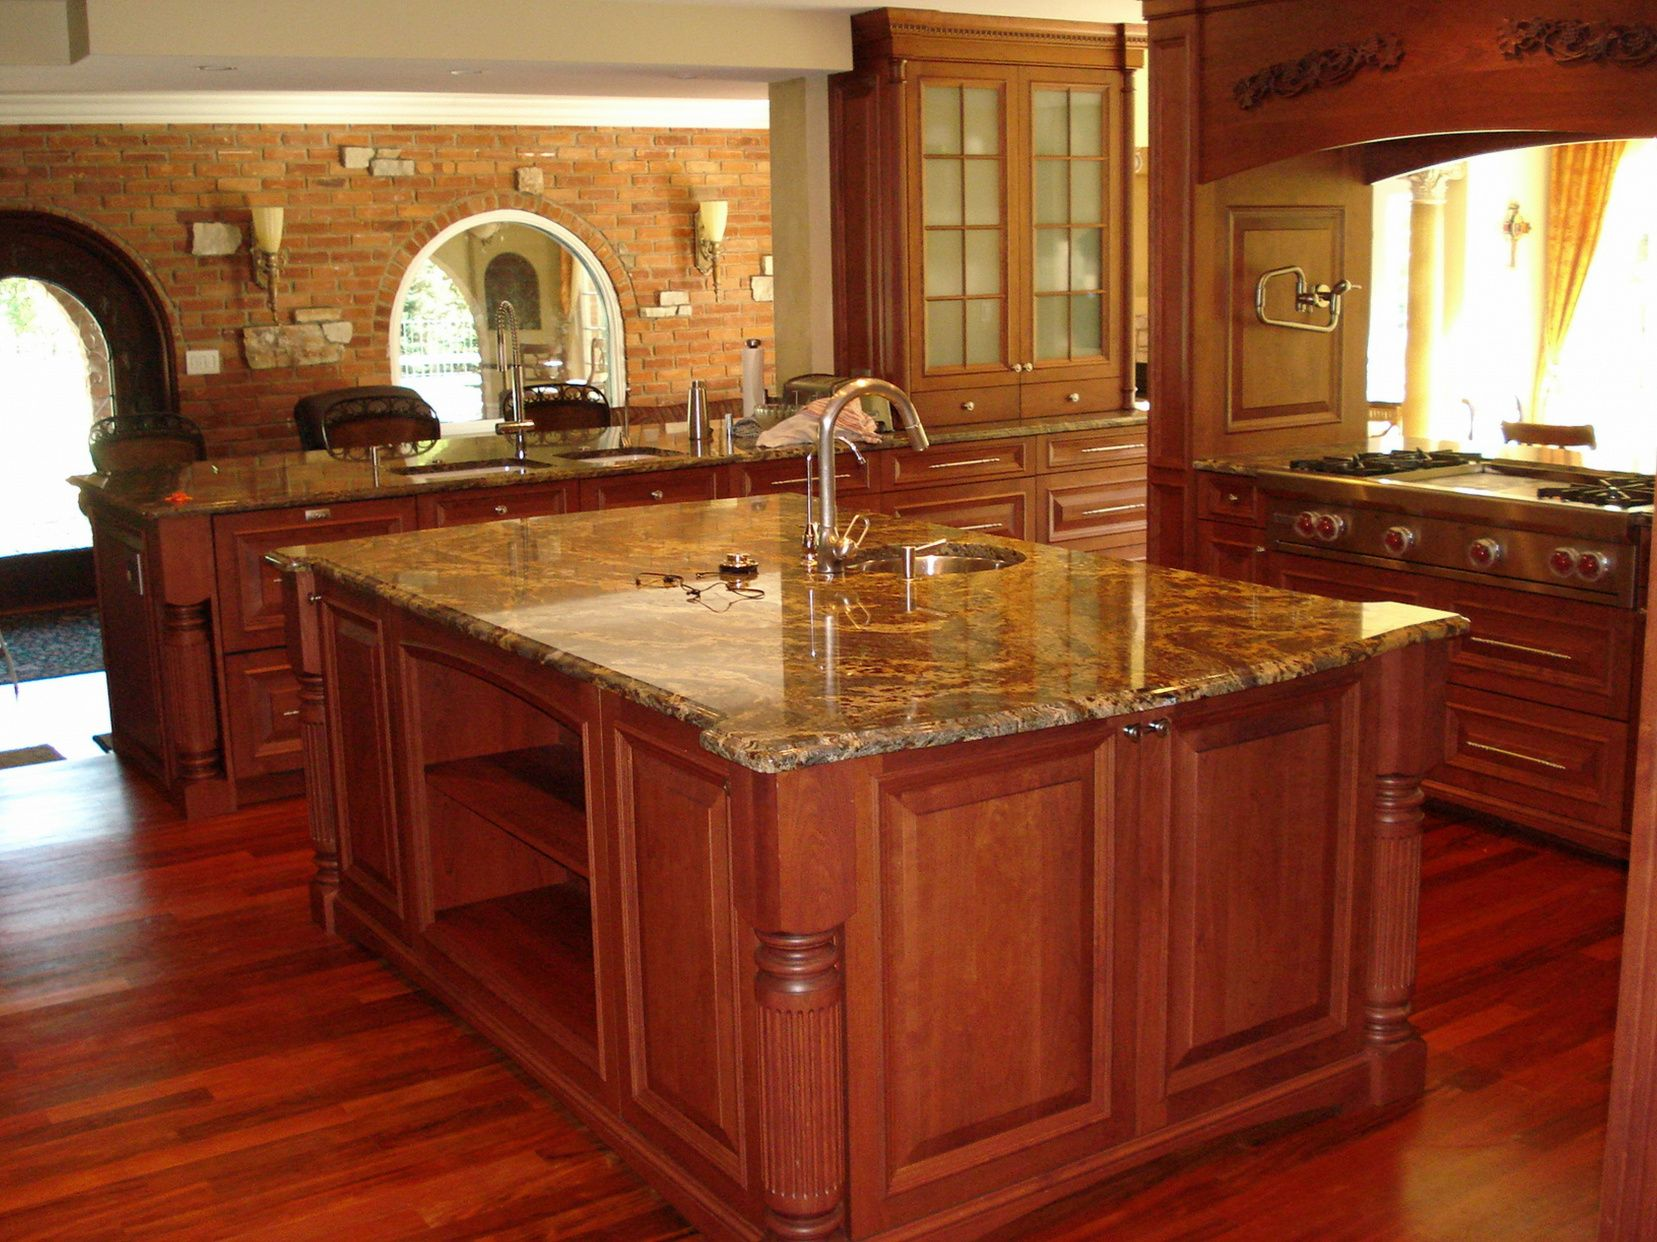 Charmant 55+ Costco Granite Countertops   Kitchen Cabinets Update Ideas On A Budget  Check More At